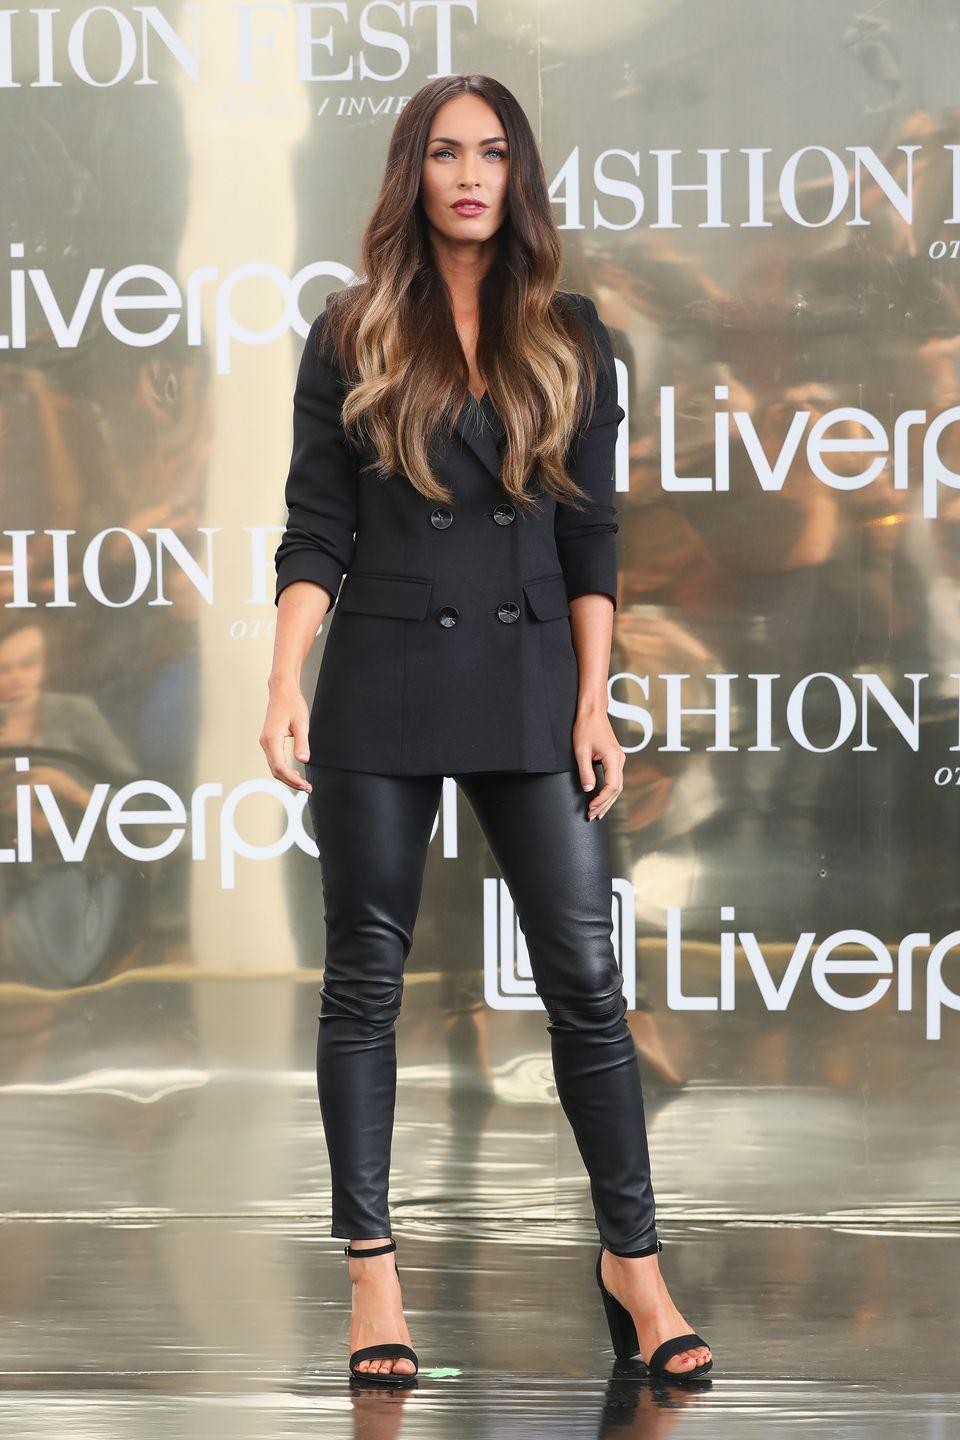 <p>Fox was spotted at a press conference in Mexico wearing a black tuxedo jacket, black leather trousers and black block heeled shoes. </p>